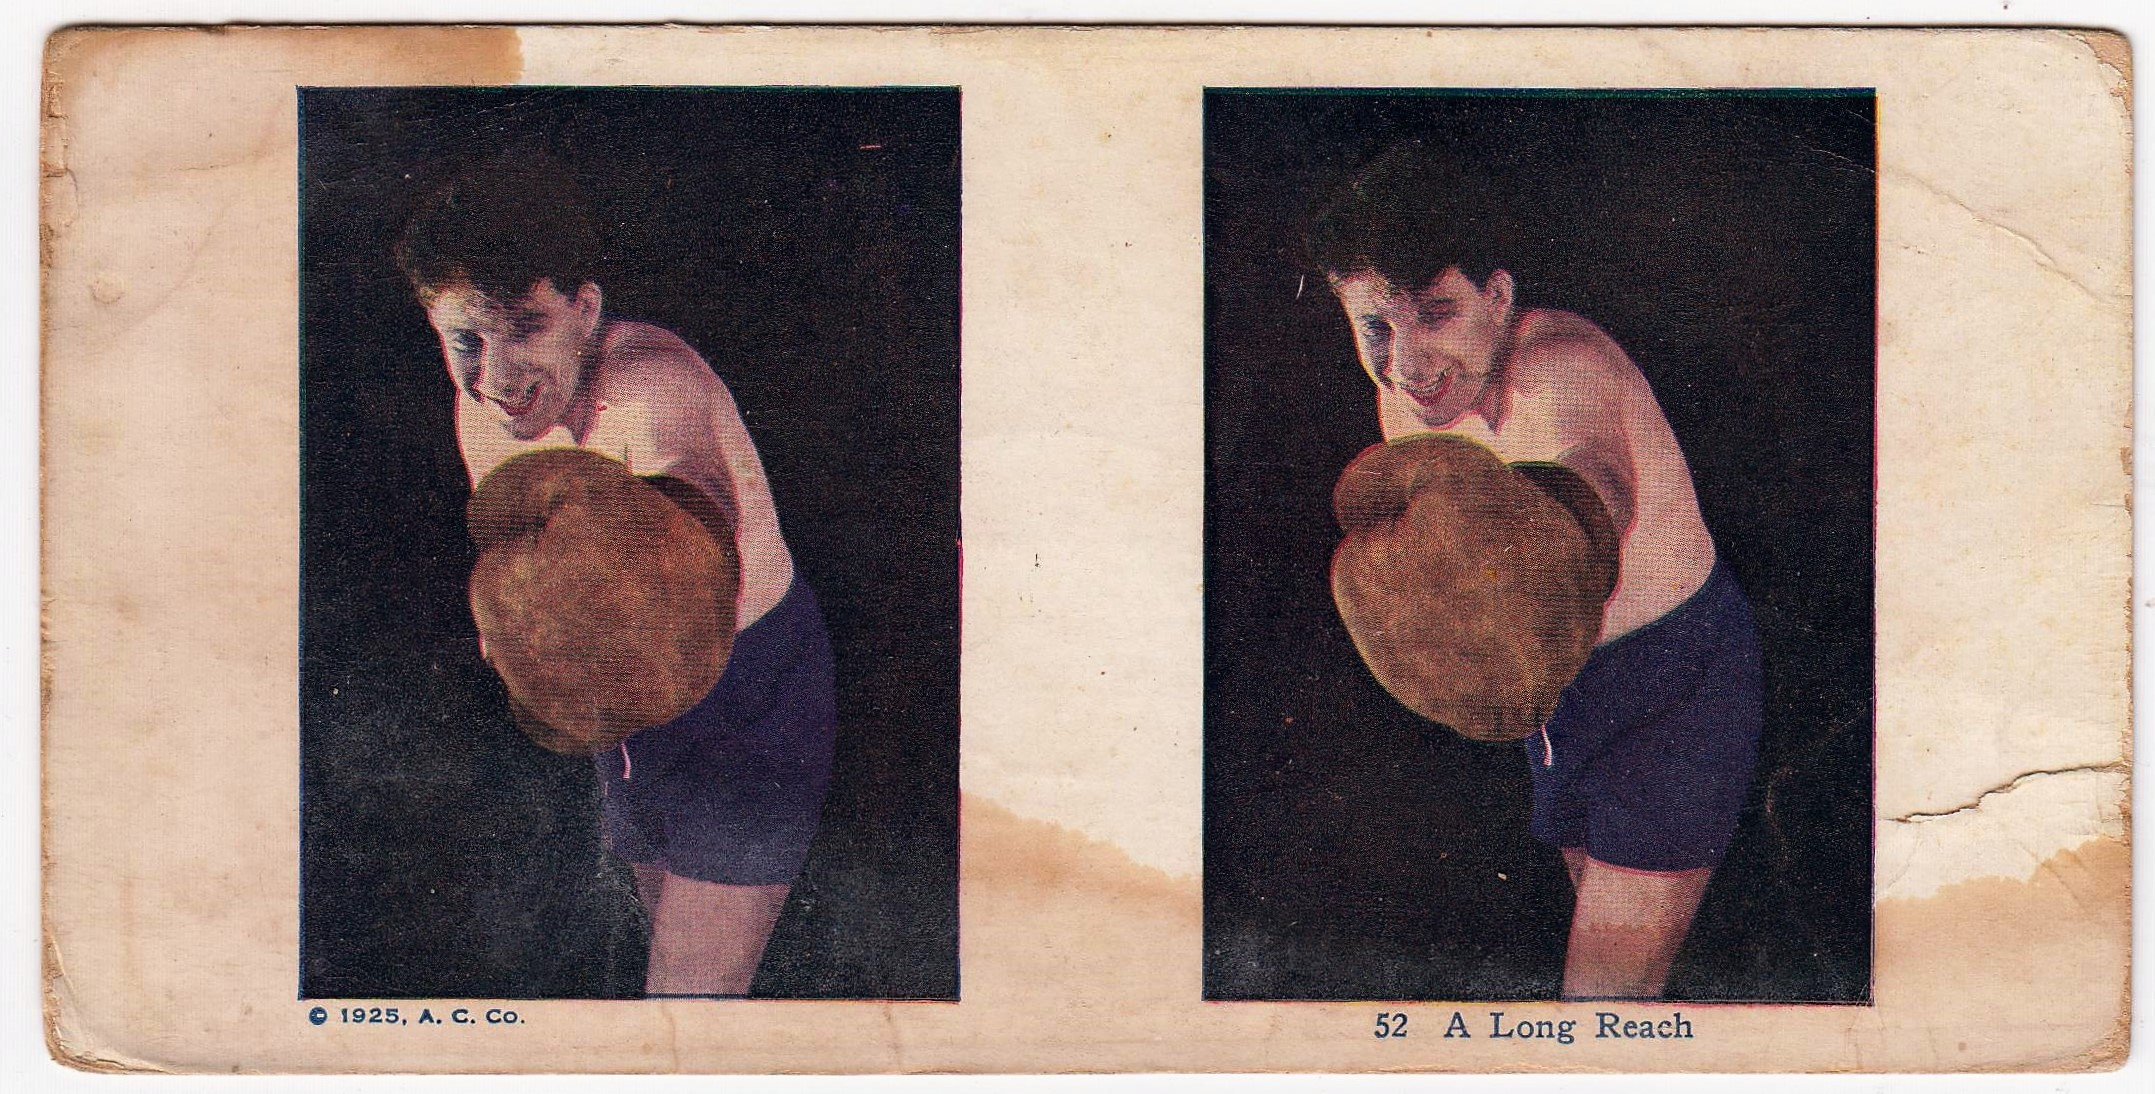 1925 AC Stereoview Boxing Card